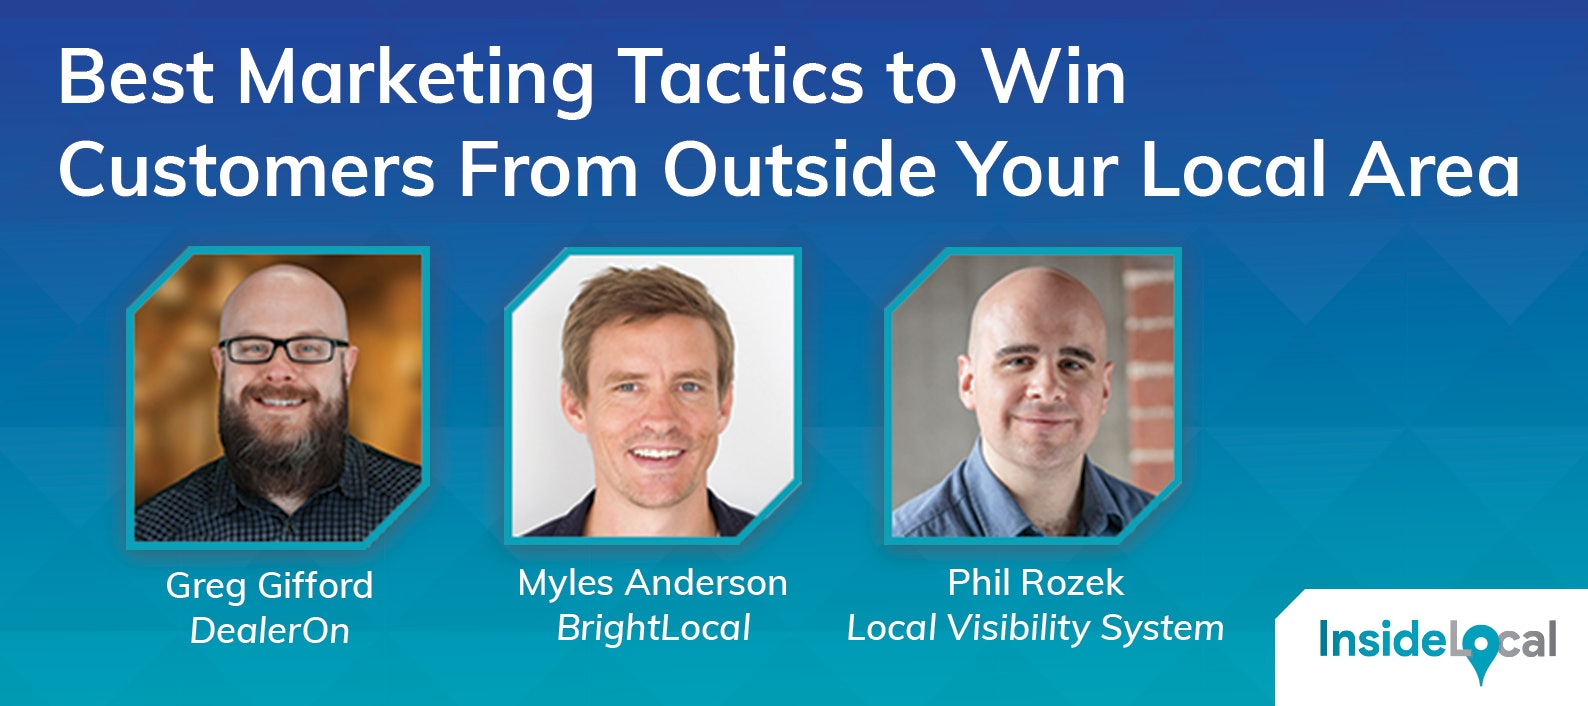 Best Marketing Tactics to Win Customers From Outside Your Local Area